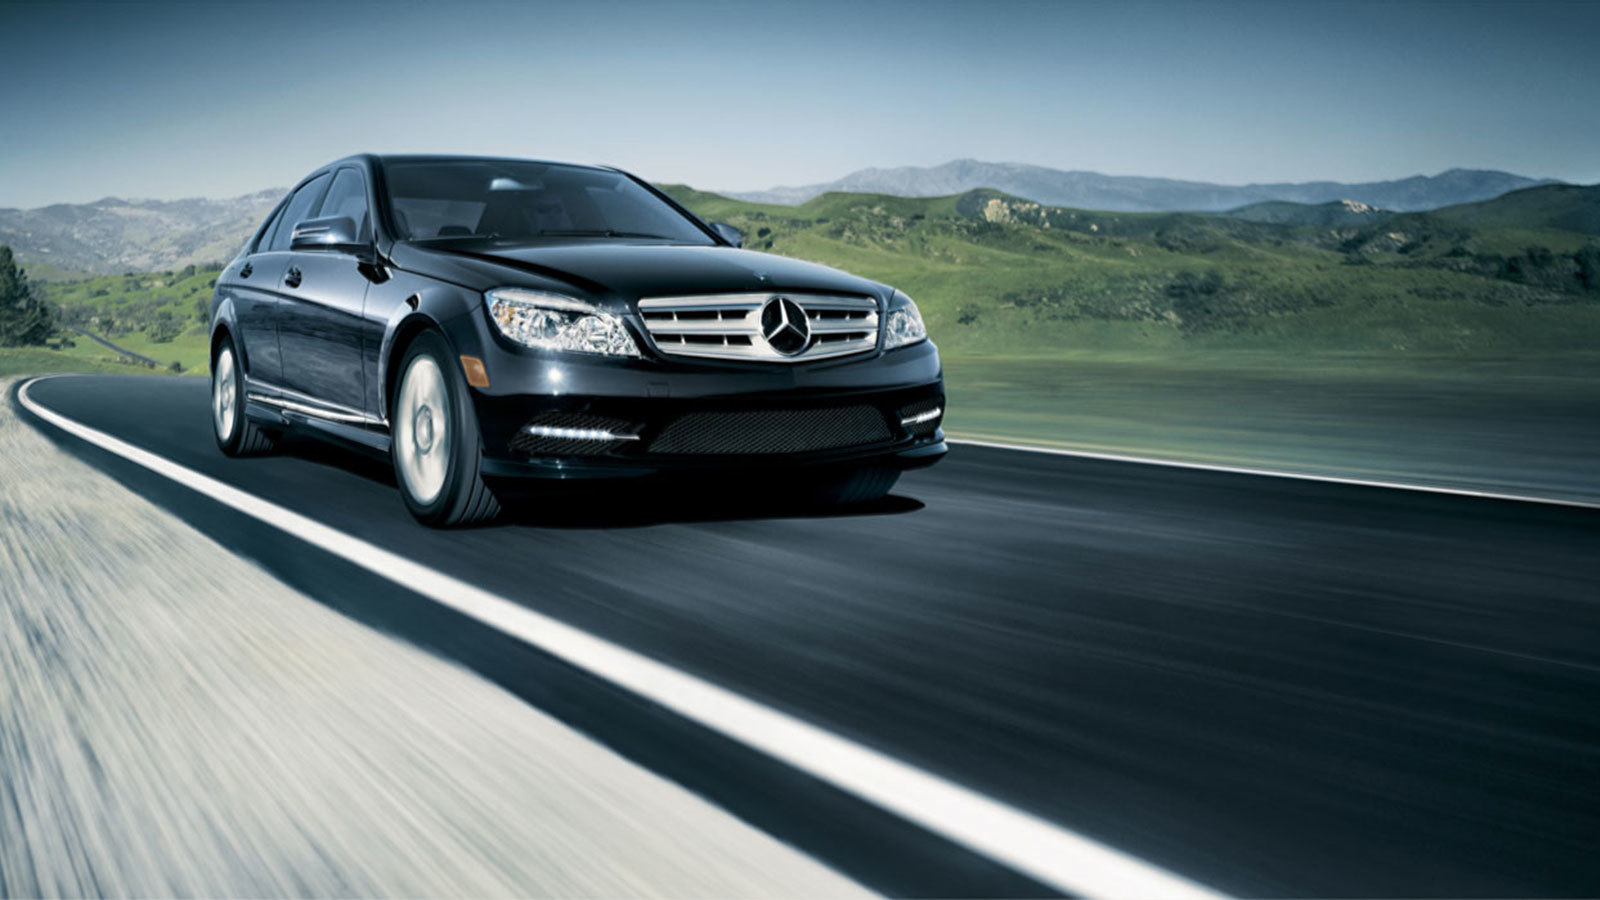 Cpo warranties and benefits mercedes benz of rochester for Mercedes benz cpo warranty coverage